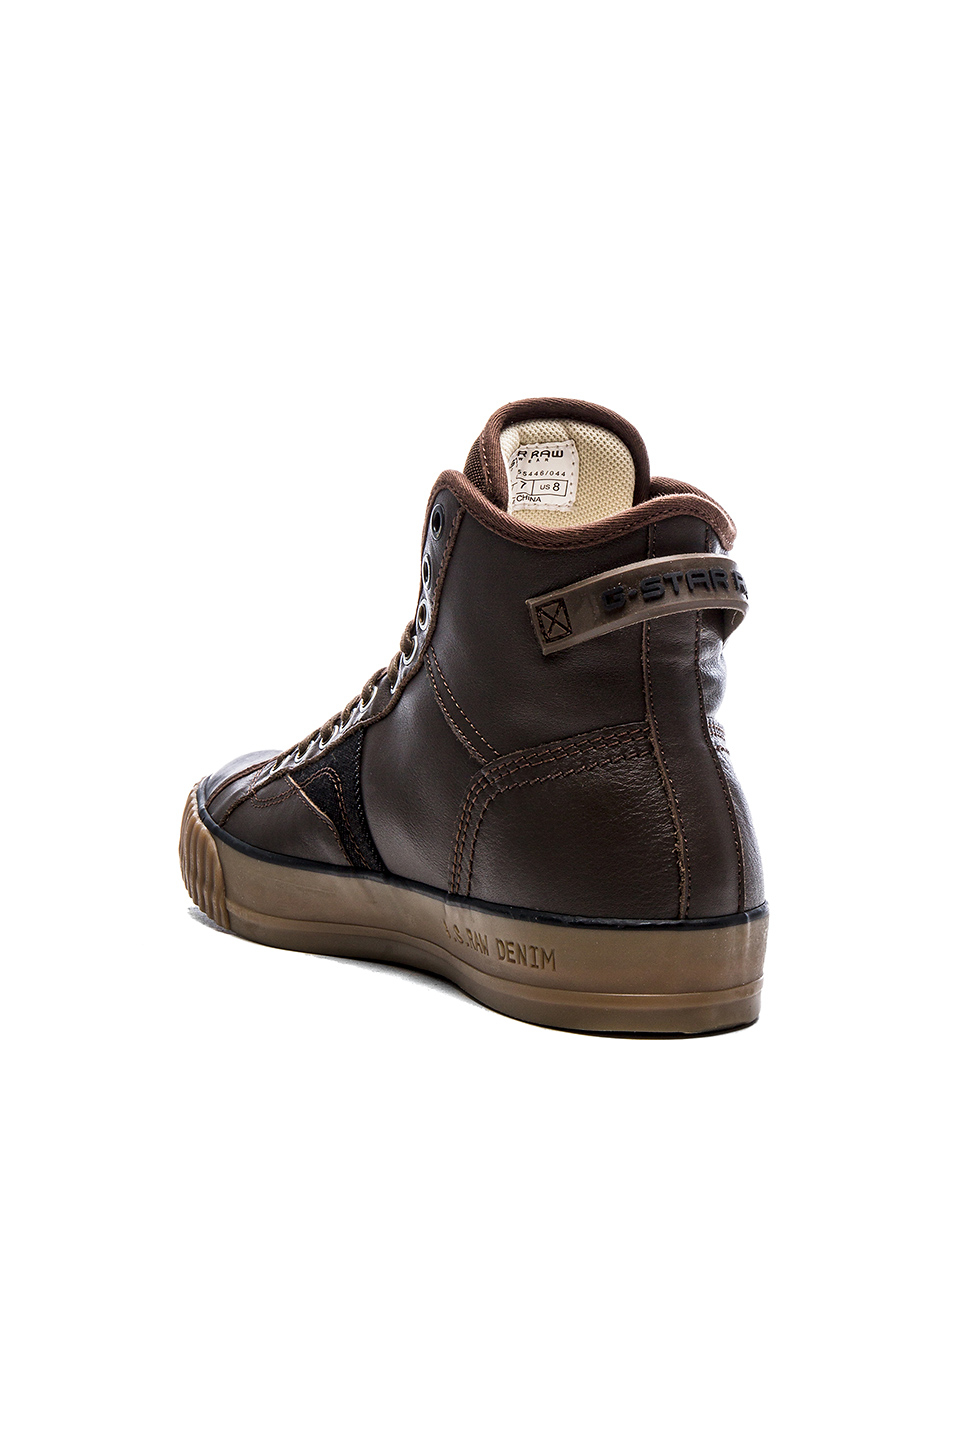 g star raw campus raw scott high top sneakers in brown for men lyst. Black Bedroom Furniture Sets. Home Design Ideas